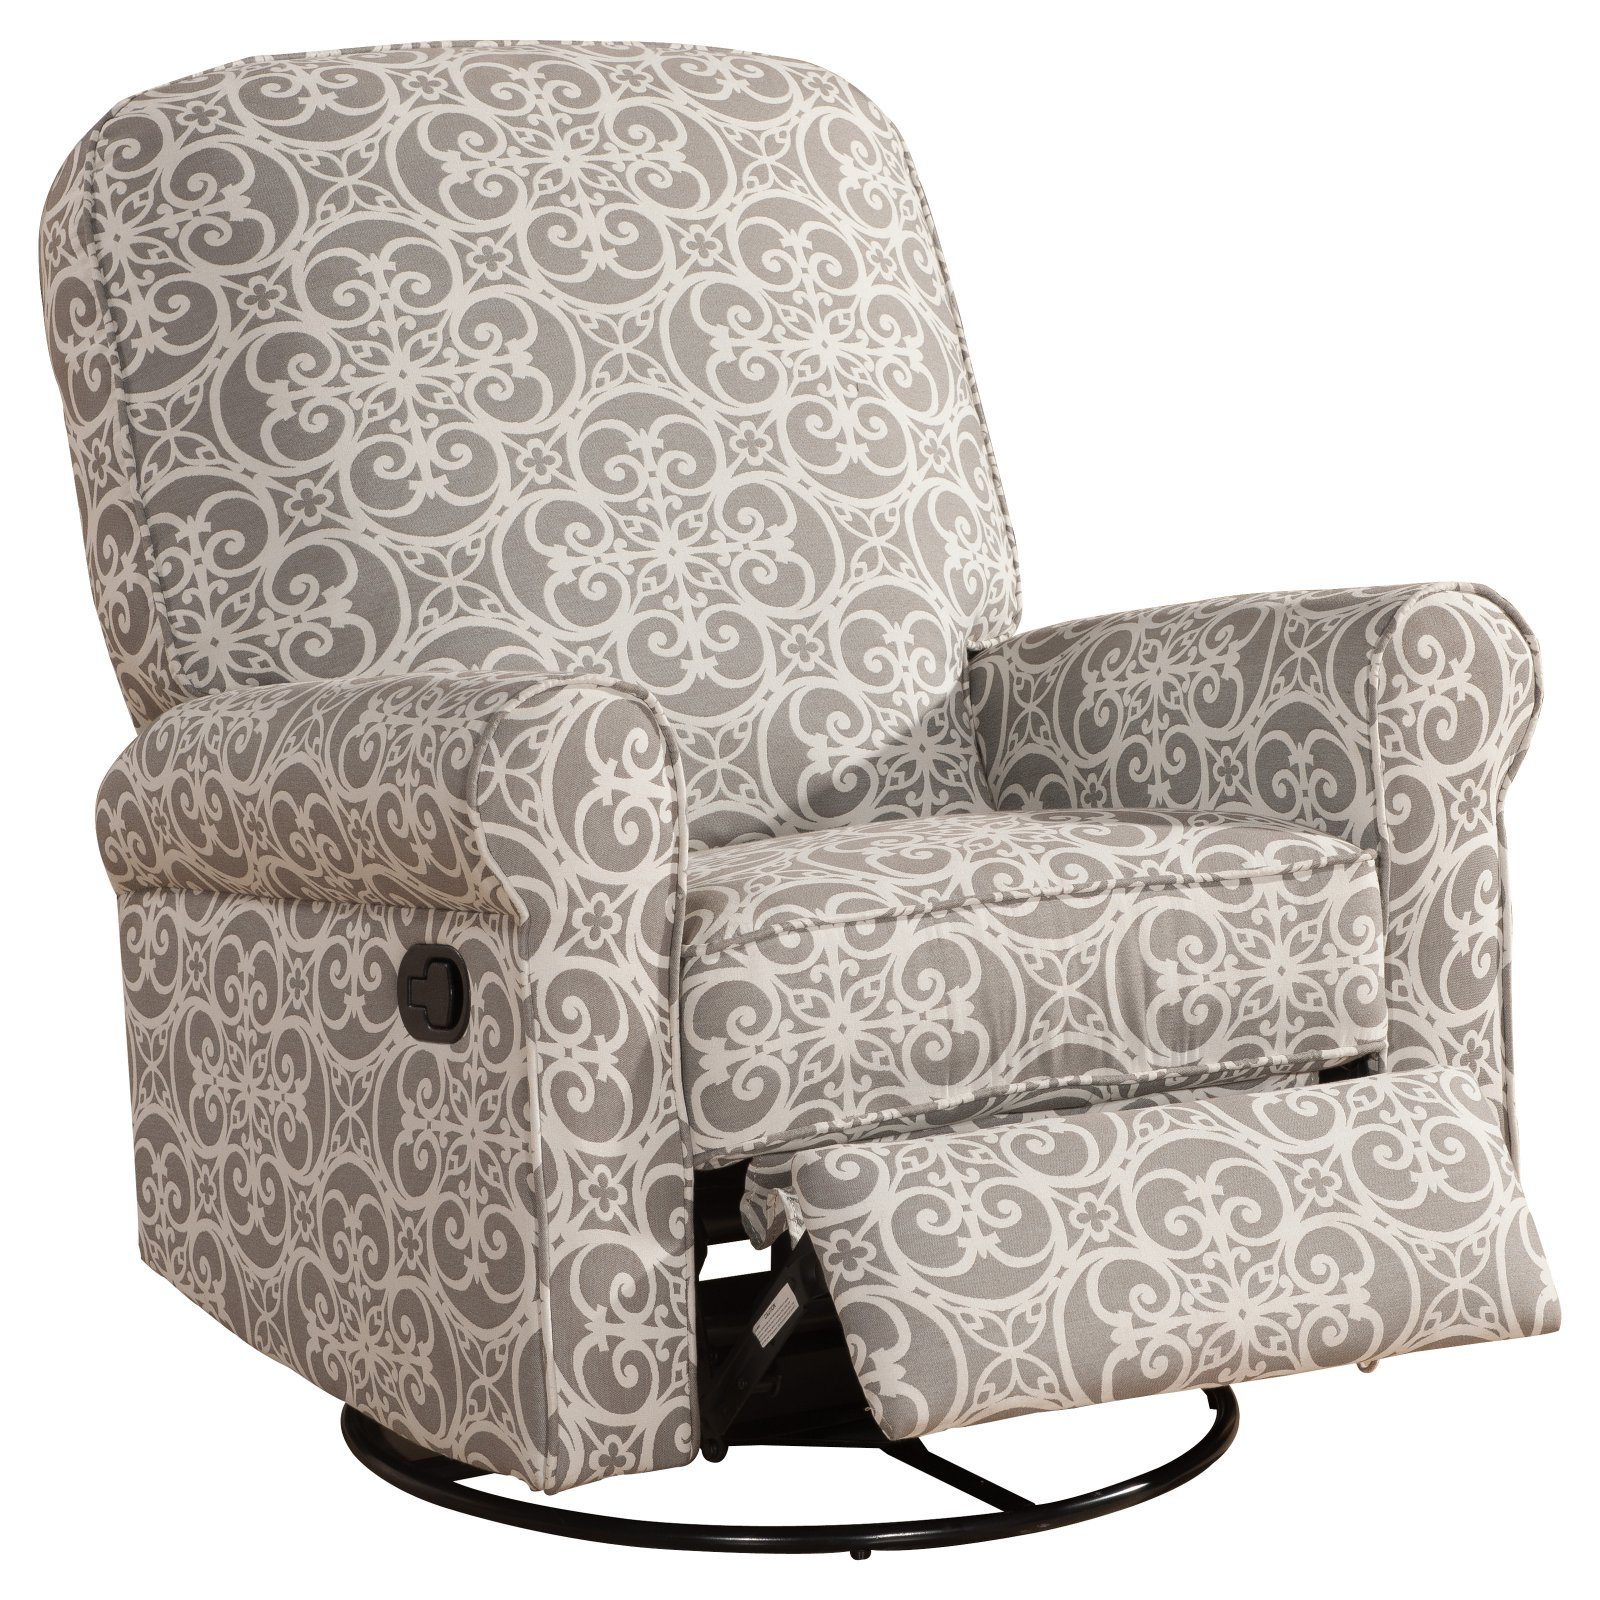 Home Meridian International Ashewick Swivel Glider Recliner Doodles Ash, Gray by Pulaski